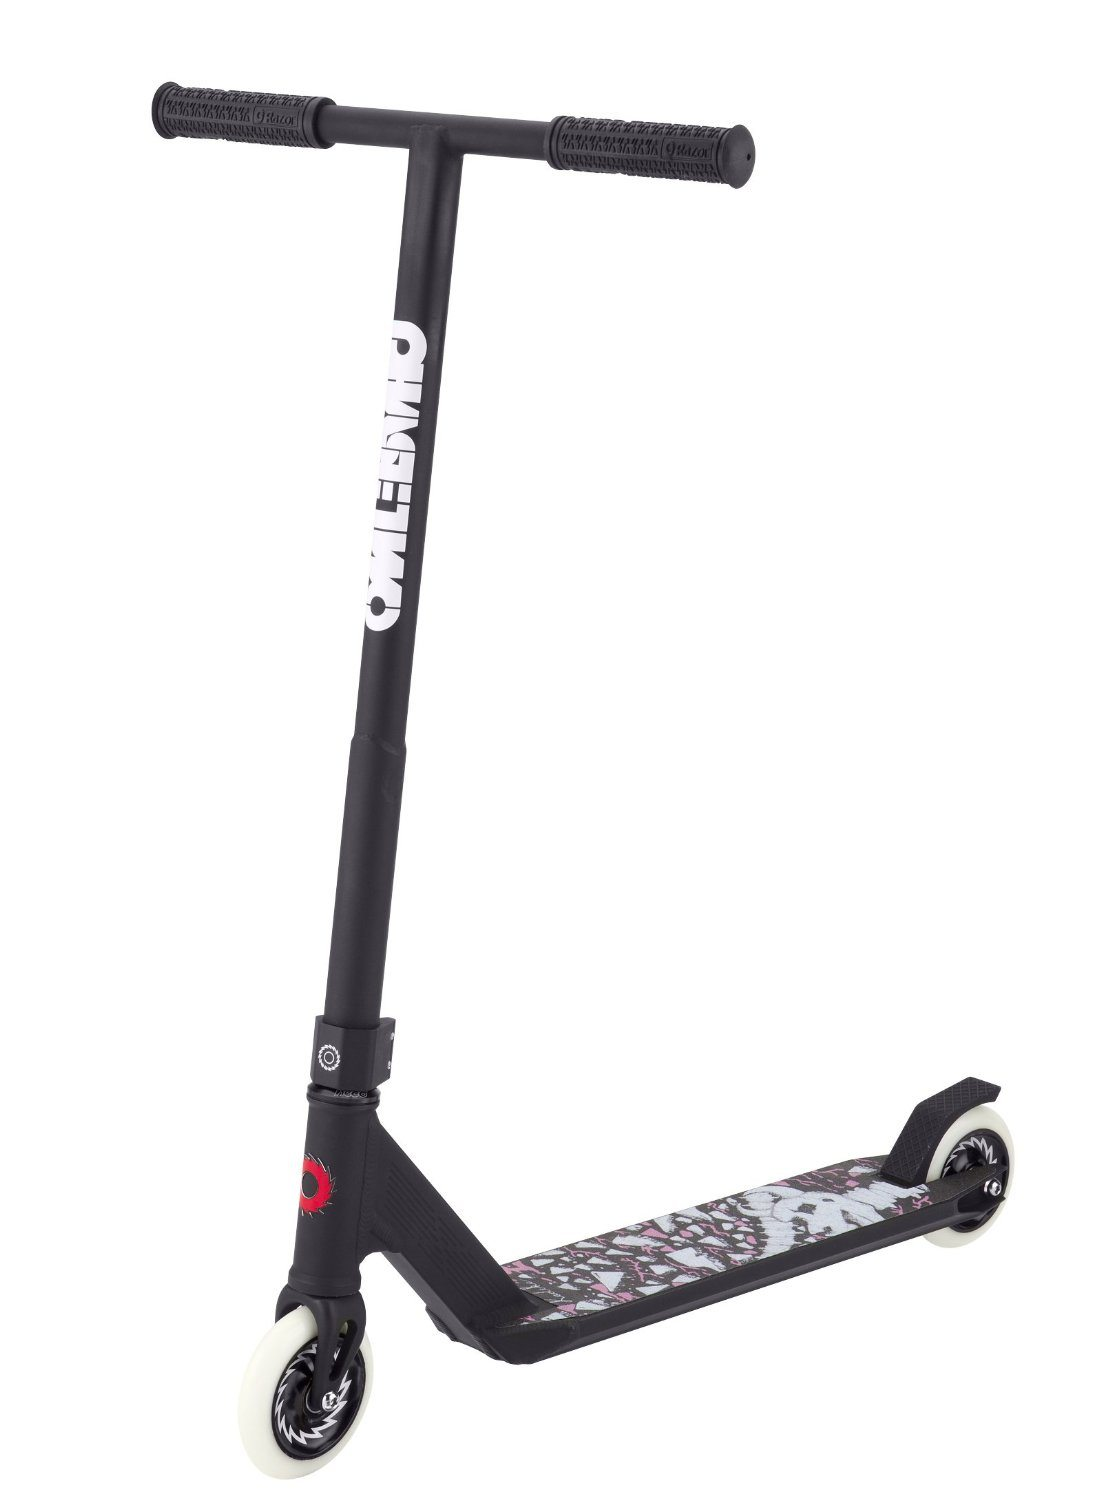 Razor Phase Two Signature John Radtke Pro Scooter